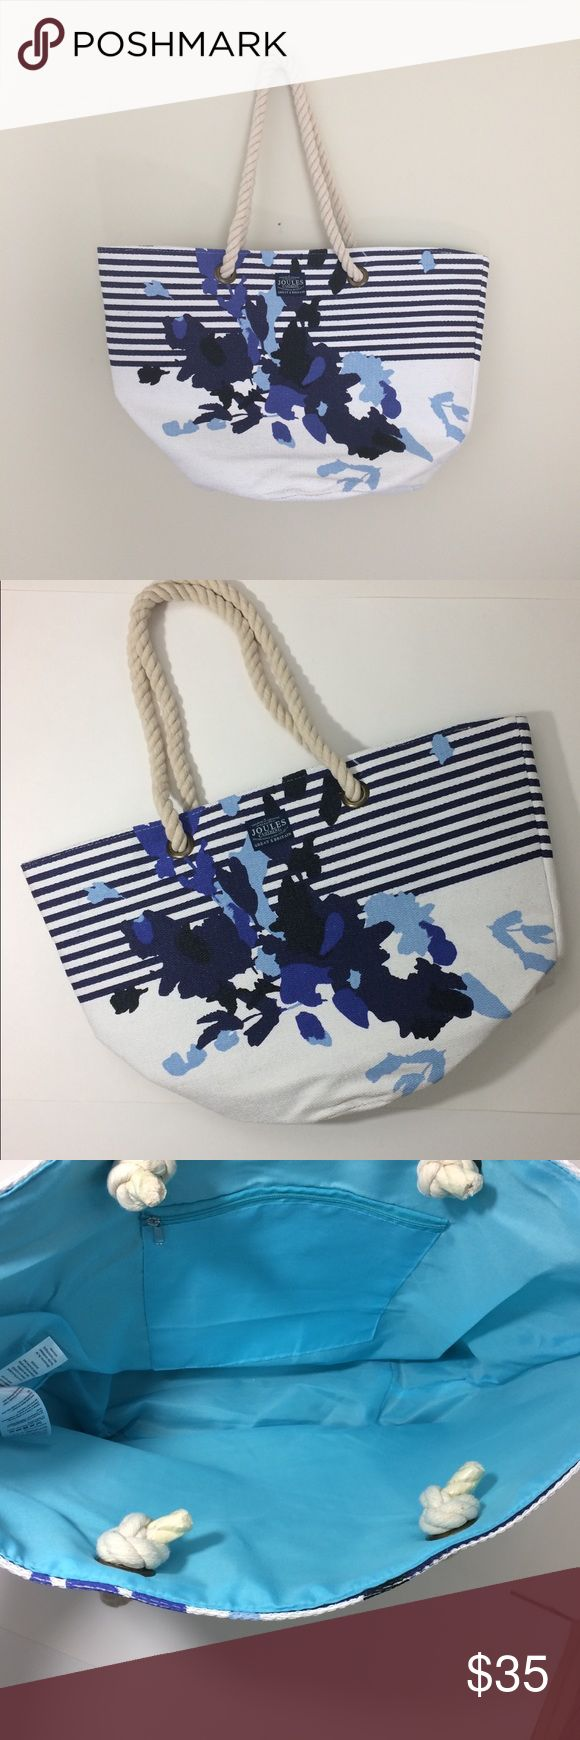 🆕 LISTING NWOT Joules Floral & striped bag Brand new & never used! Joules oversized summer tote has a long chunky rope handle & an inside zippered pocket. Tons of room to hold your books, beach towel, etc. Have a question leave it in the comments. Joules Bags Totes